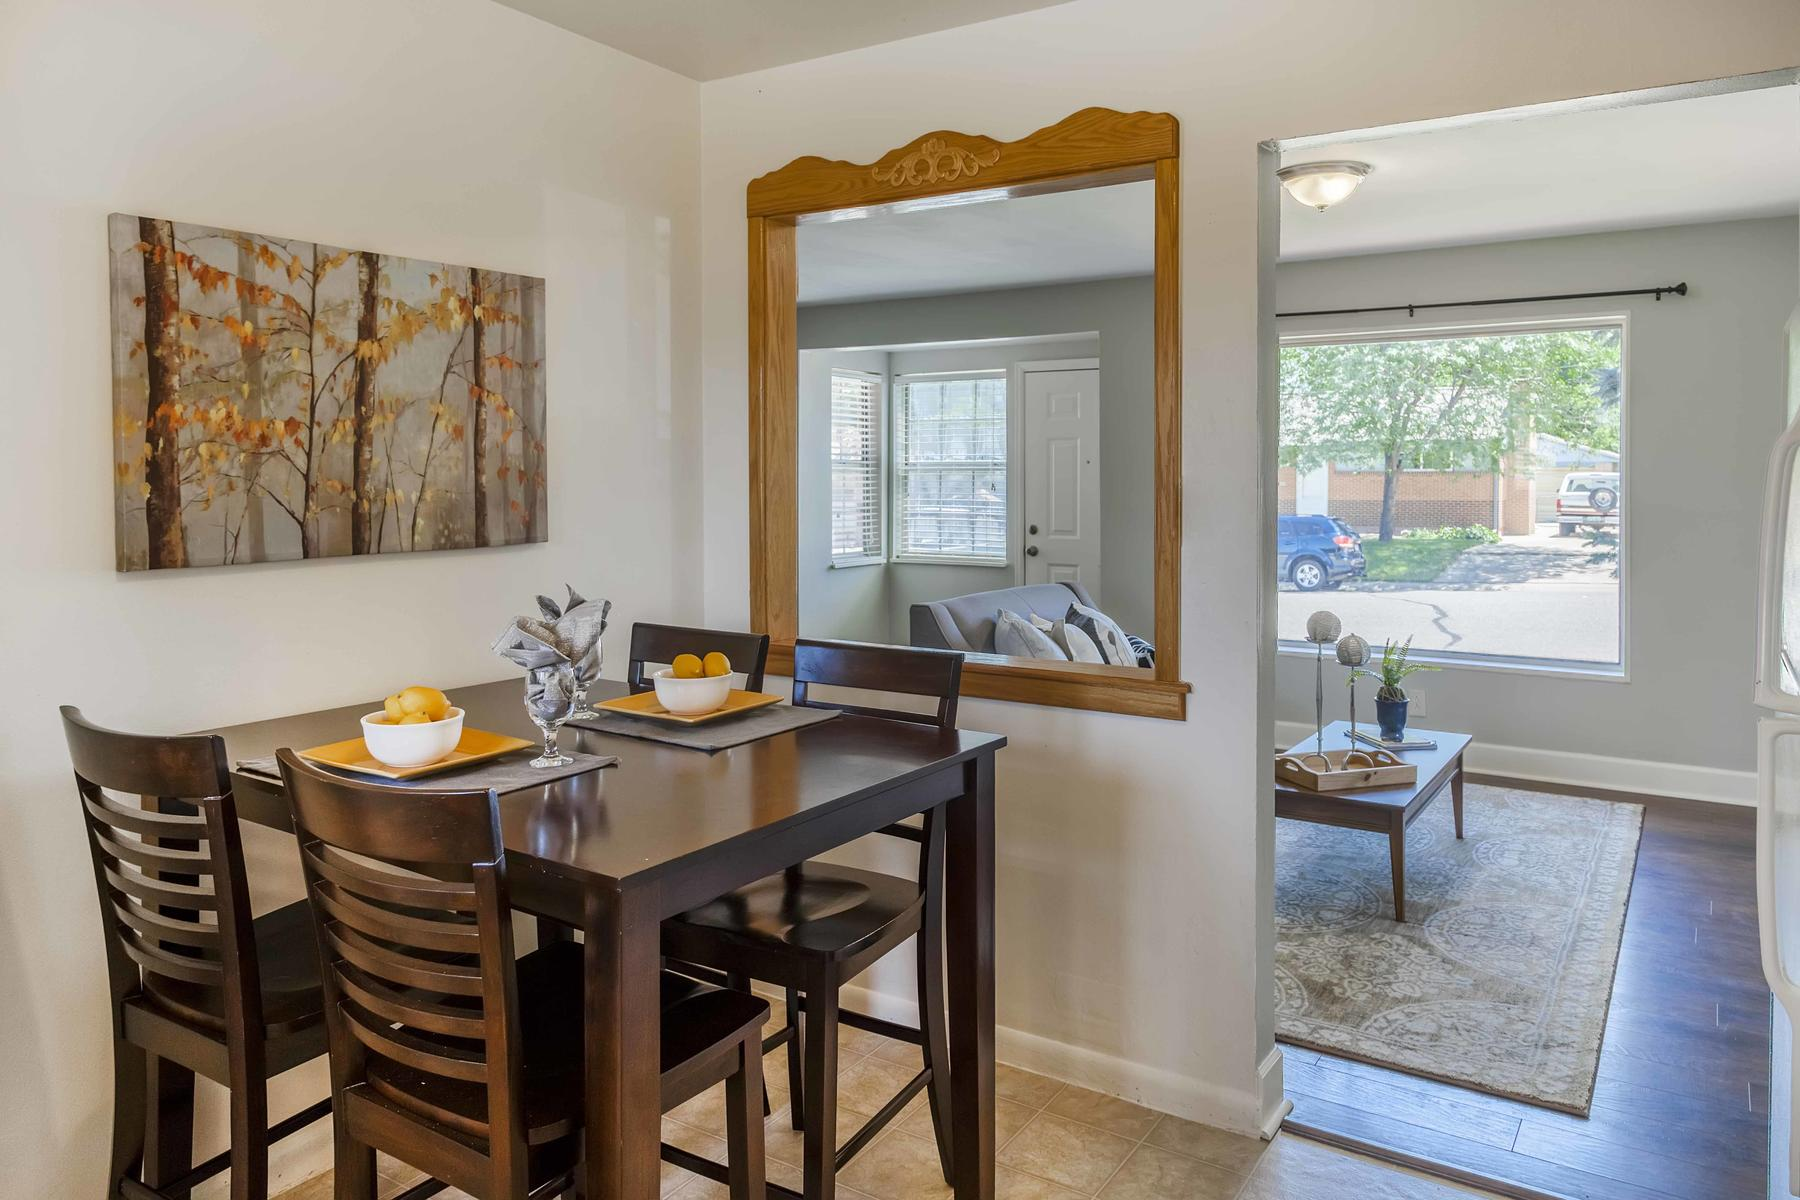 Additional photo for property listing at This Is The Perfect Home! 10543 Washington Way Northglenn, Colorado 80233 United States